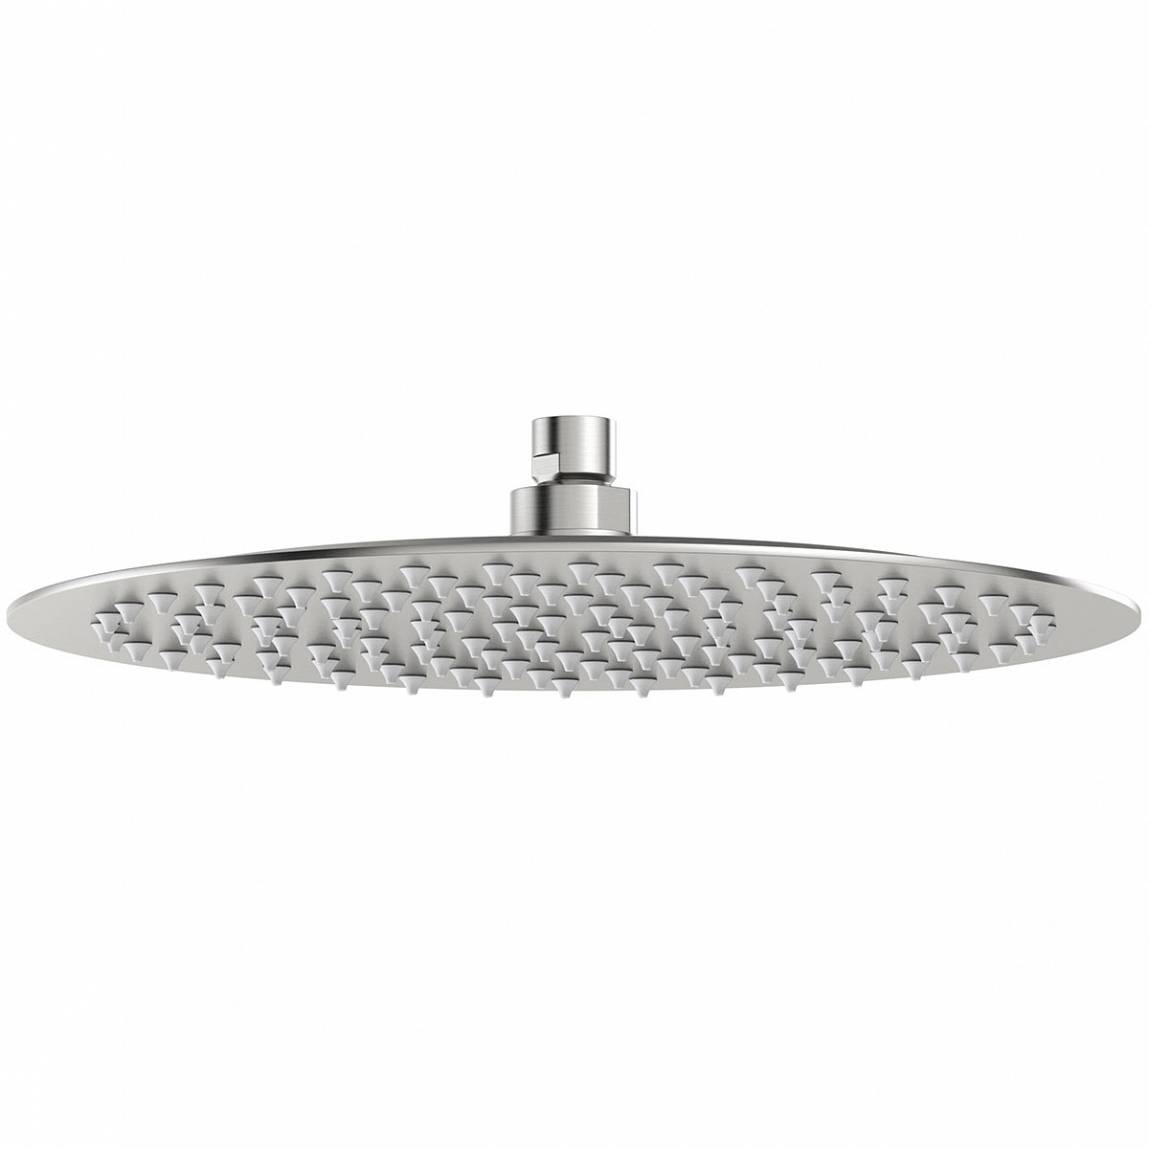 Image of Brushed Stainless Steel Waifer Shower Head Round 300mm